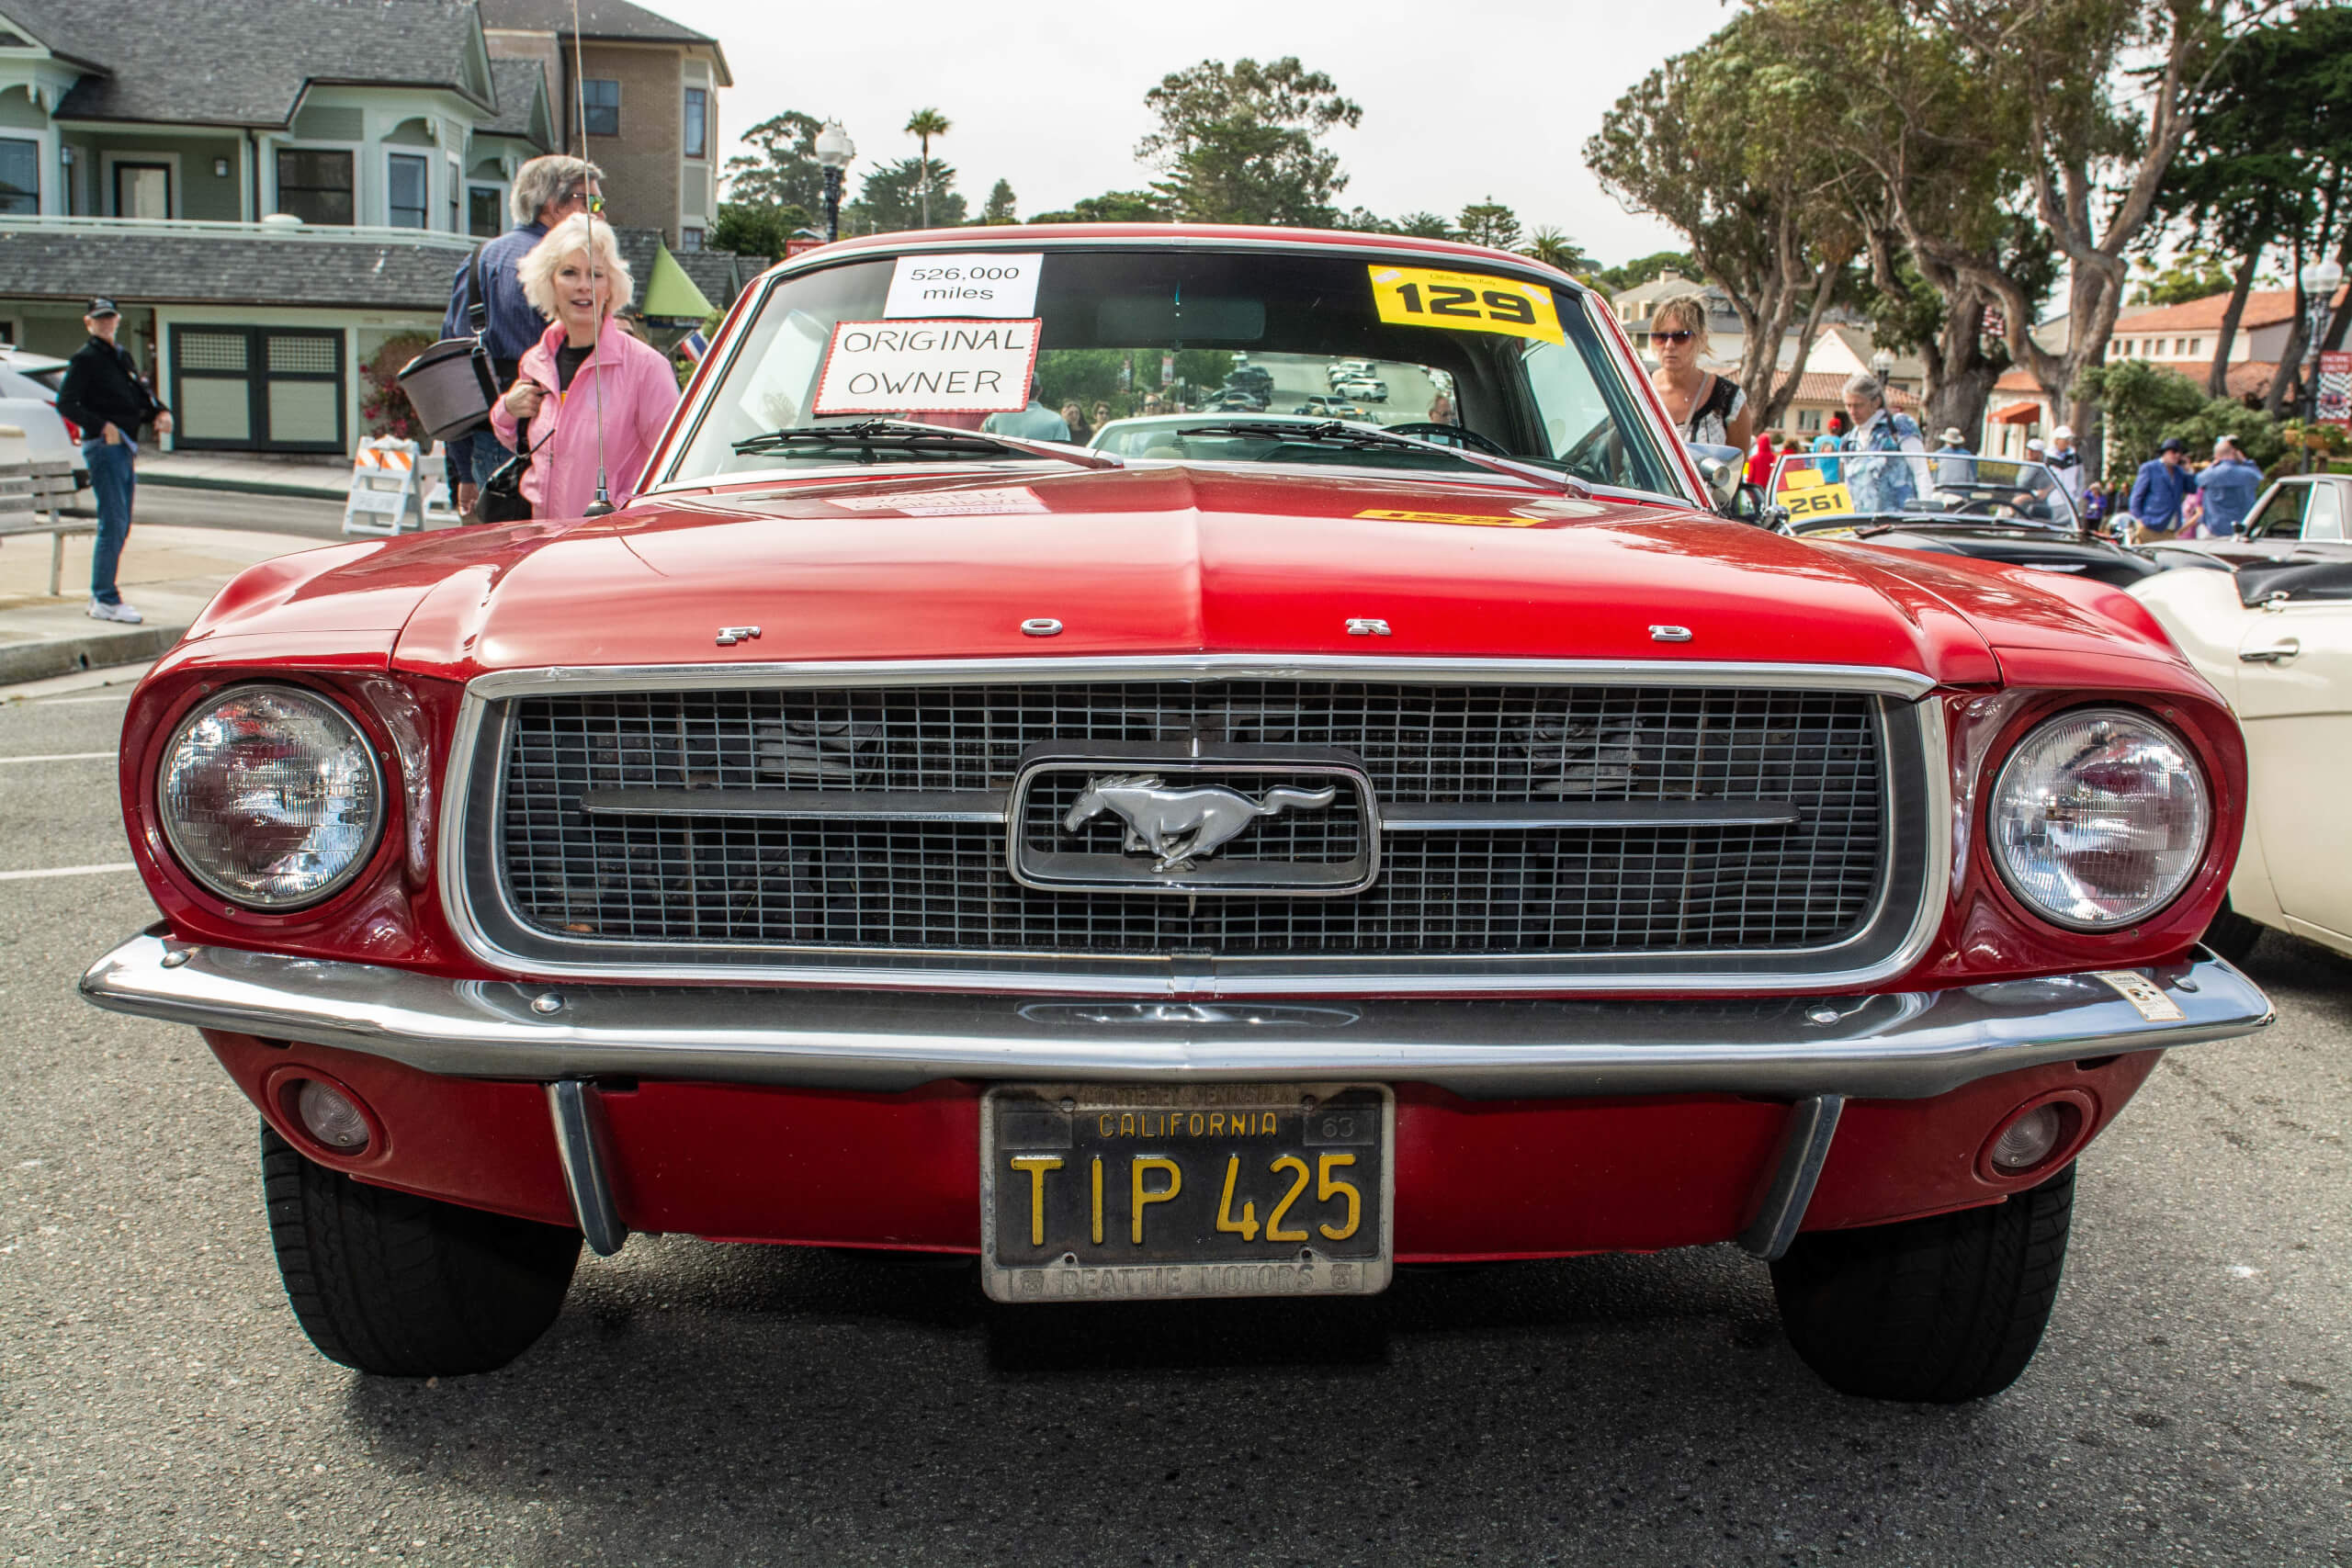 This original owner 1967 Ford Mustang was bought new by a teacher and today, shows over a half-million miles on the odometer.